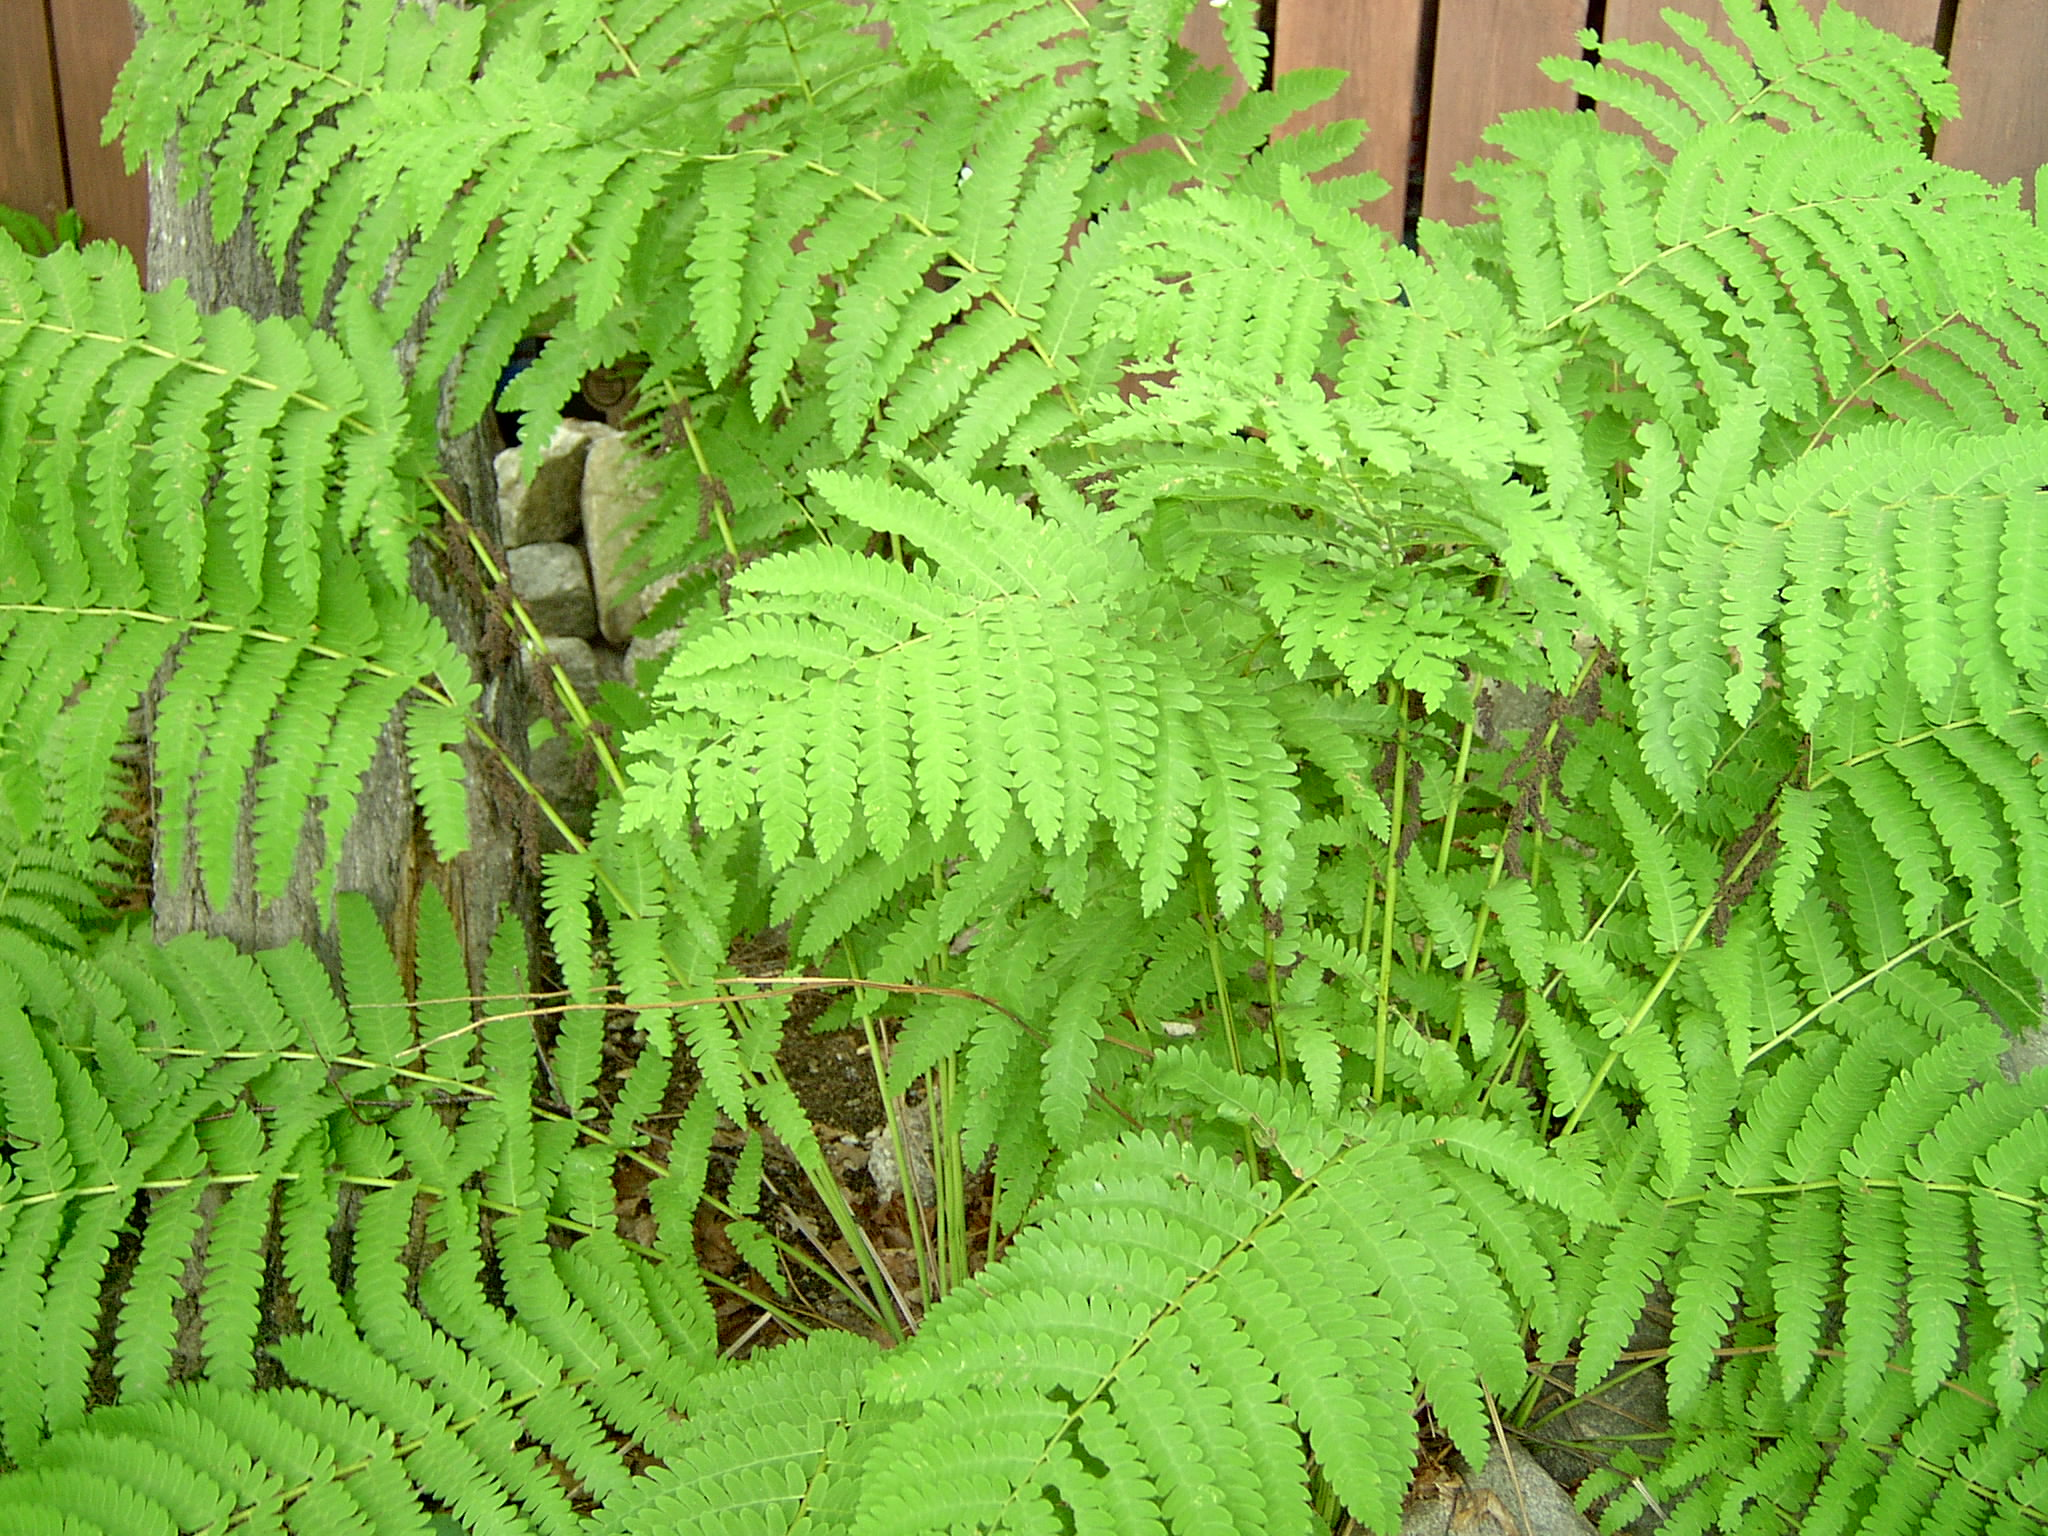 Native Fern in a Haliburton cottage garden.